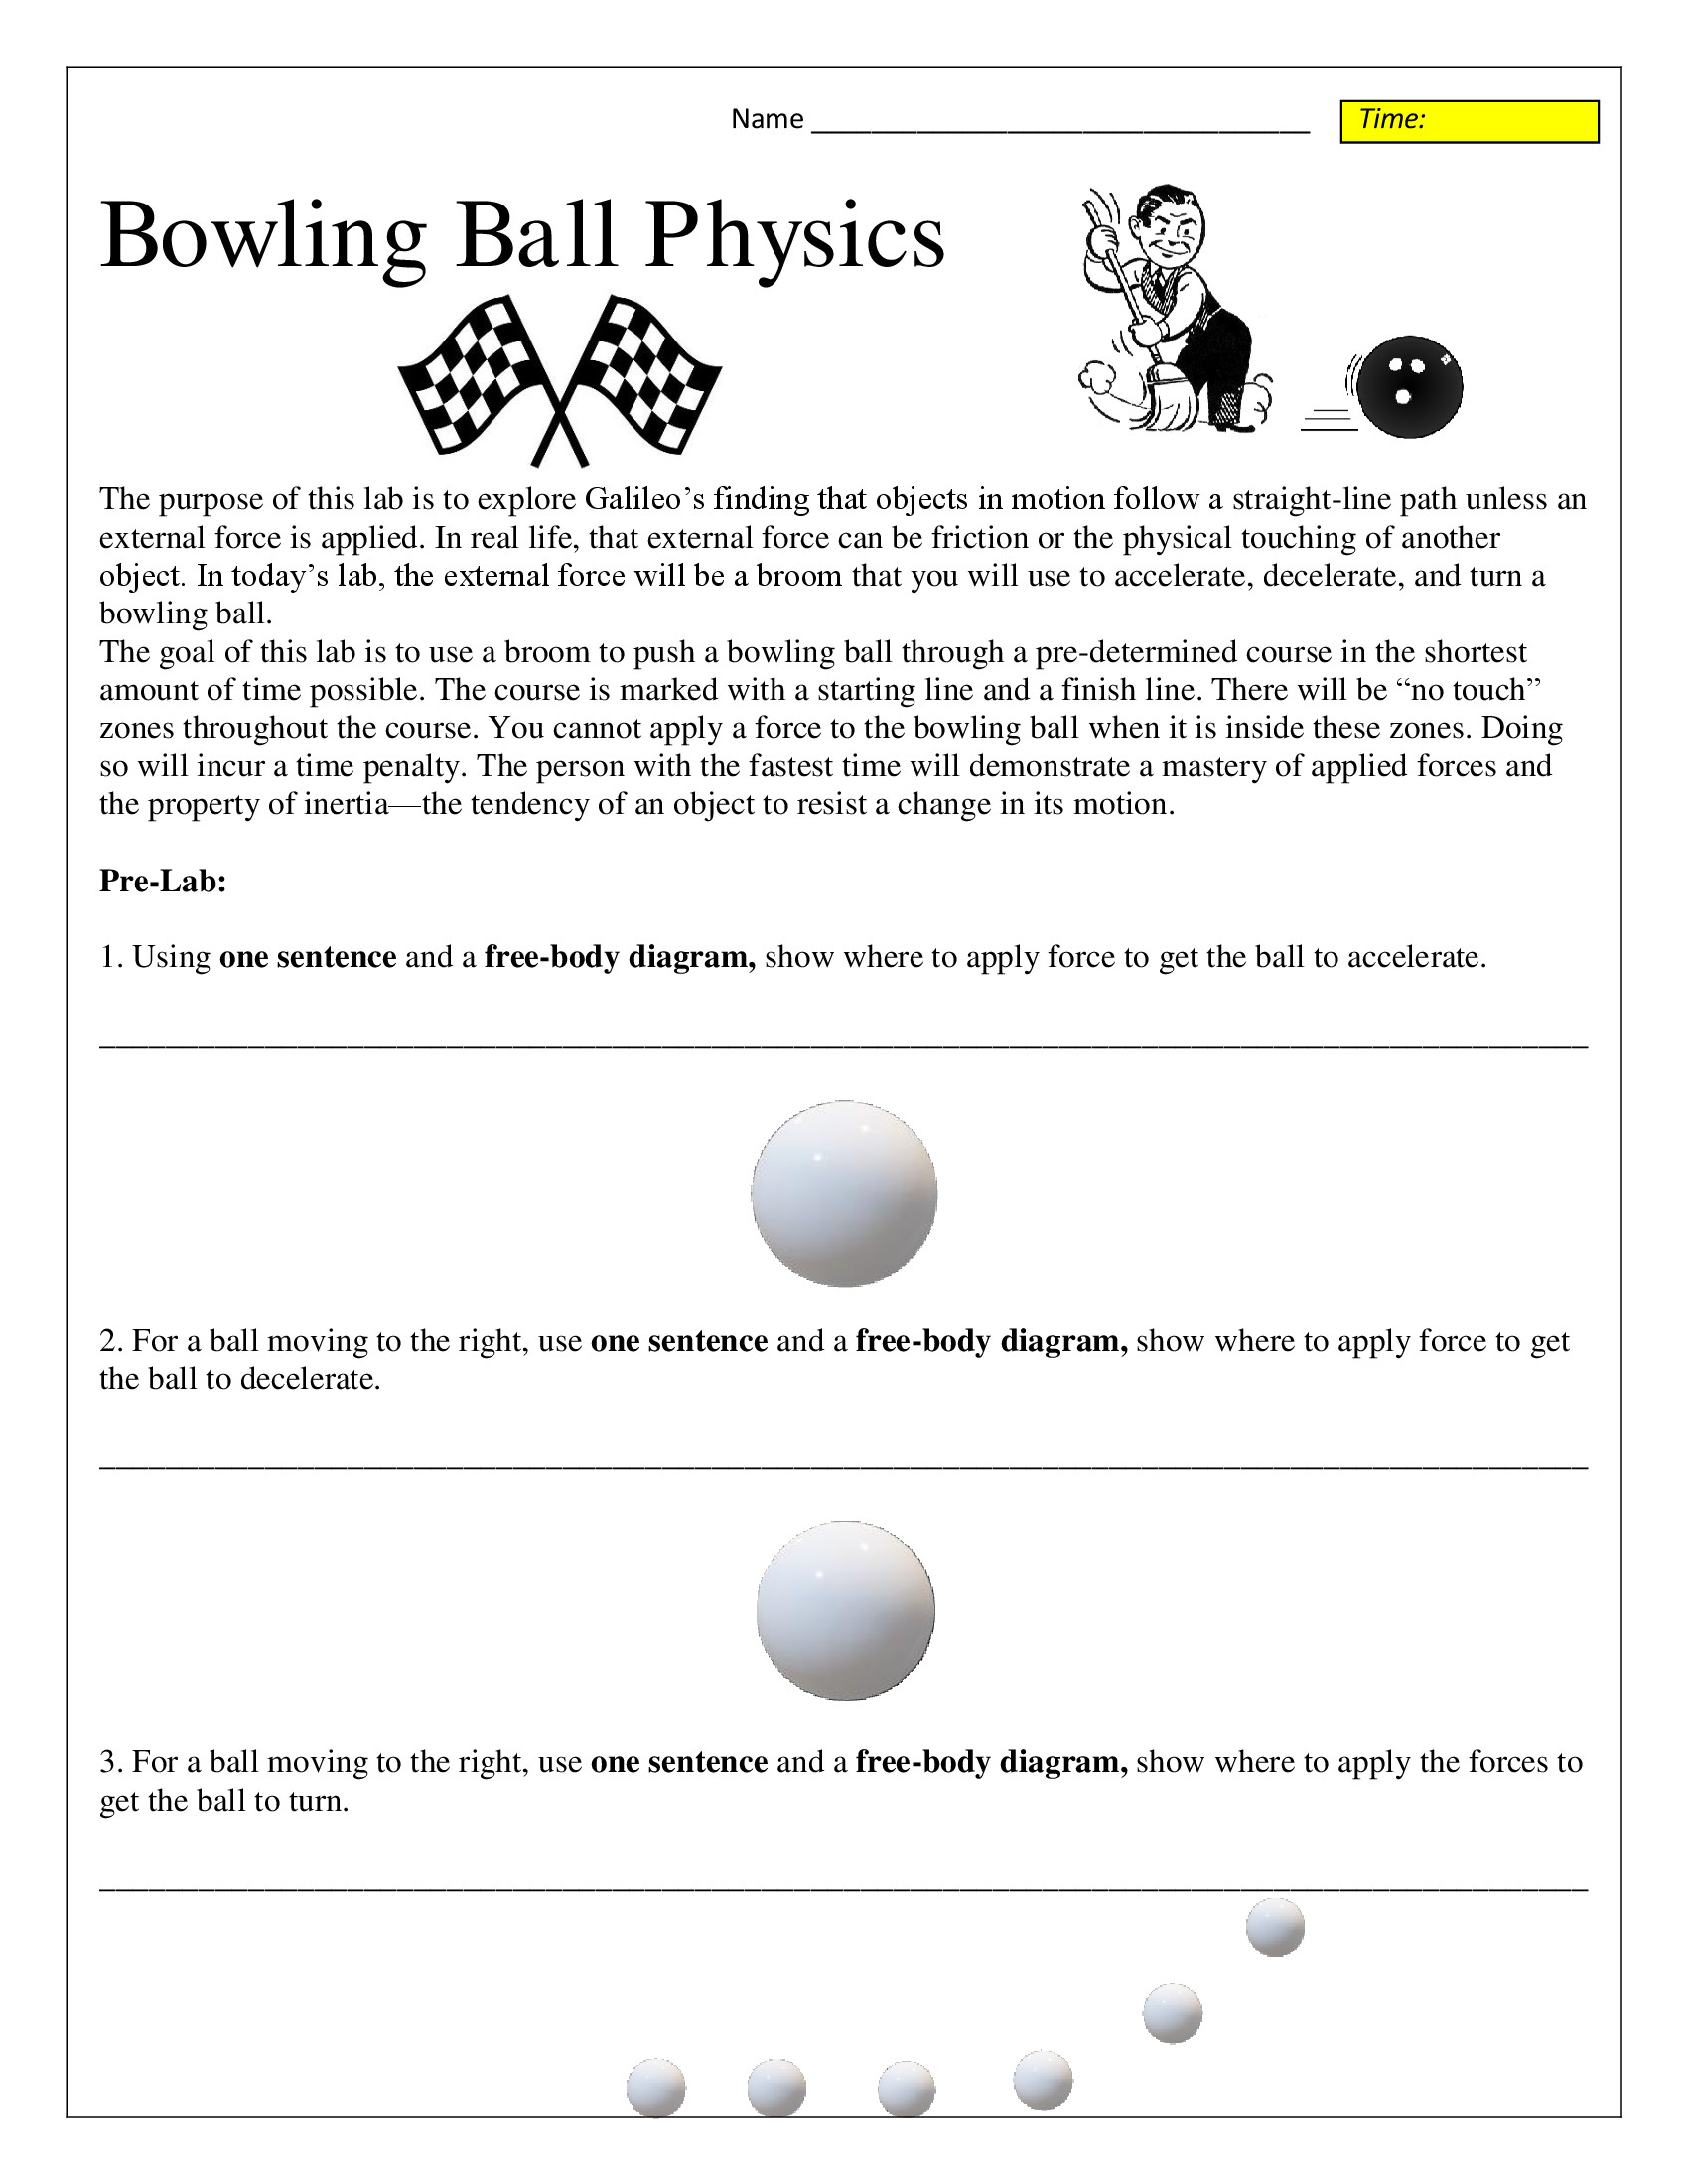 Inertia Worksheet Middle School Bowling Ball Inertia and Motion Lab